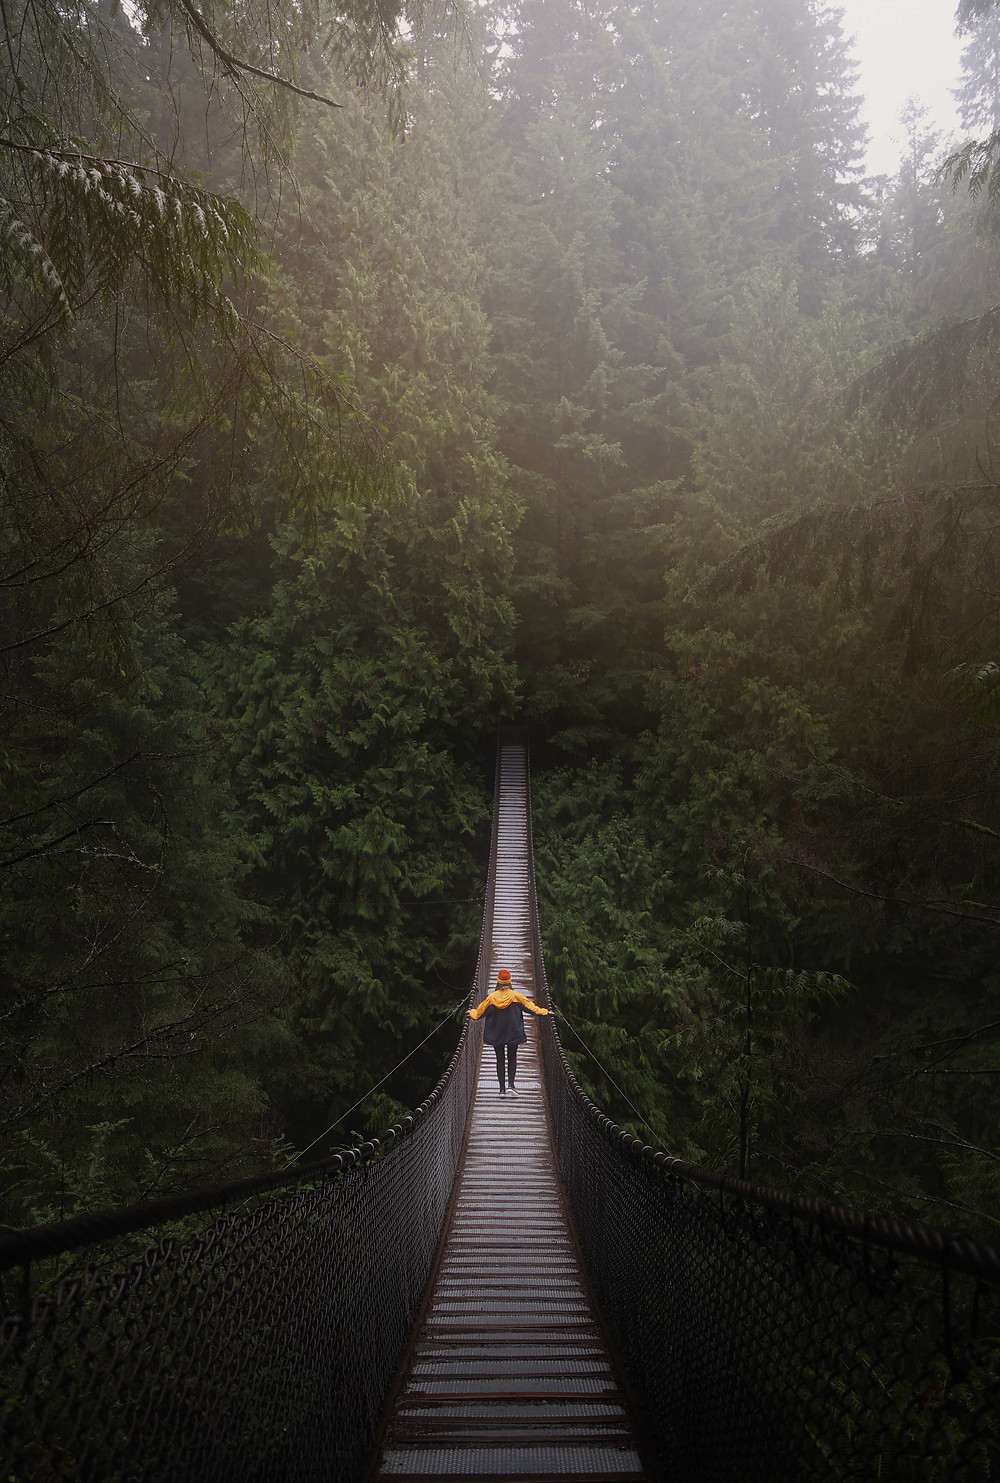 Photograph of a figure walking across a rope and wooden bridge strung across a forest full of trees. Photo courtesy of Ian Froome via Unsplash.